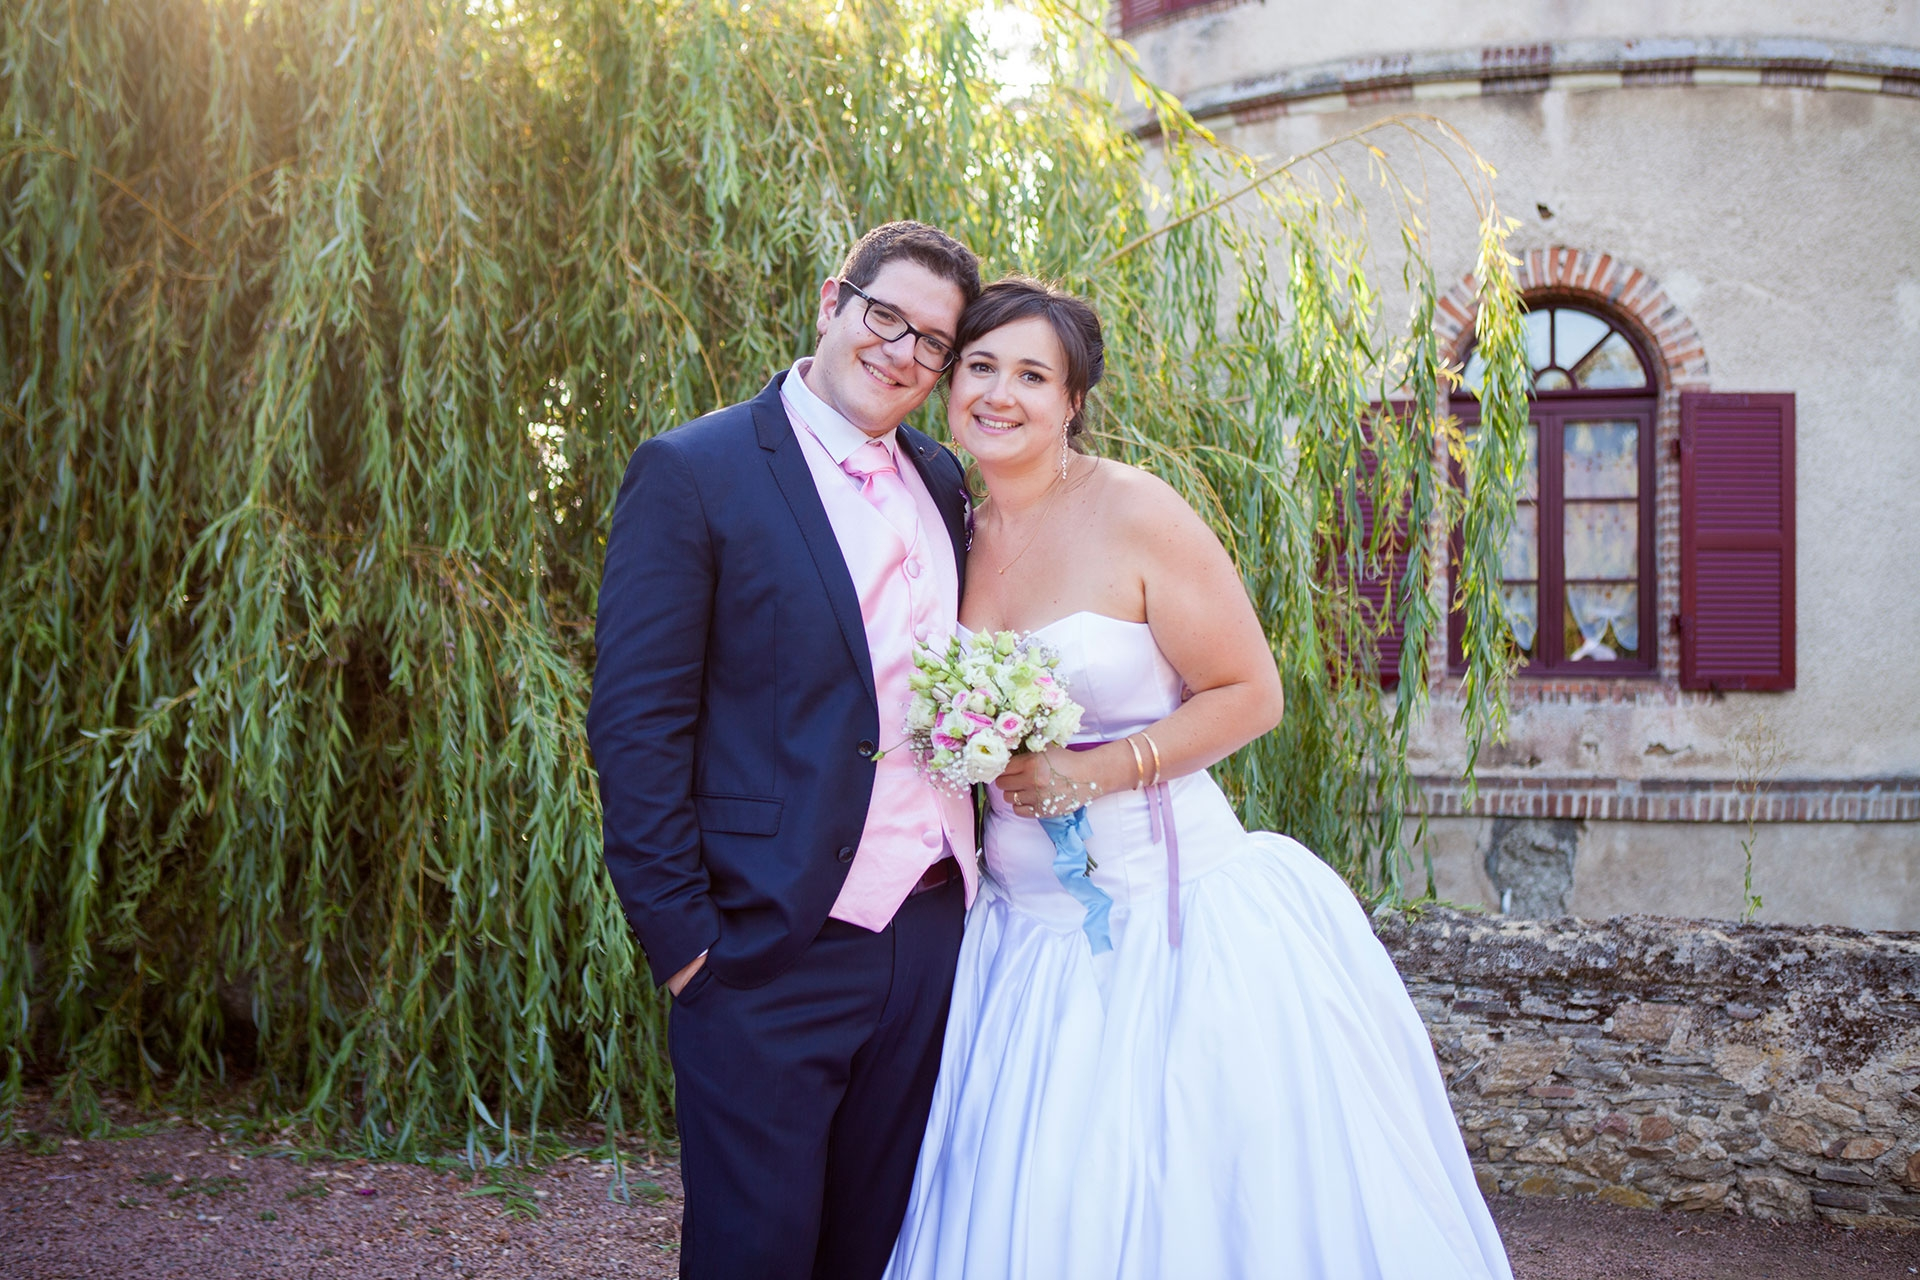 particuliers-evenements-mariages-oui-france&philippe-61